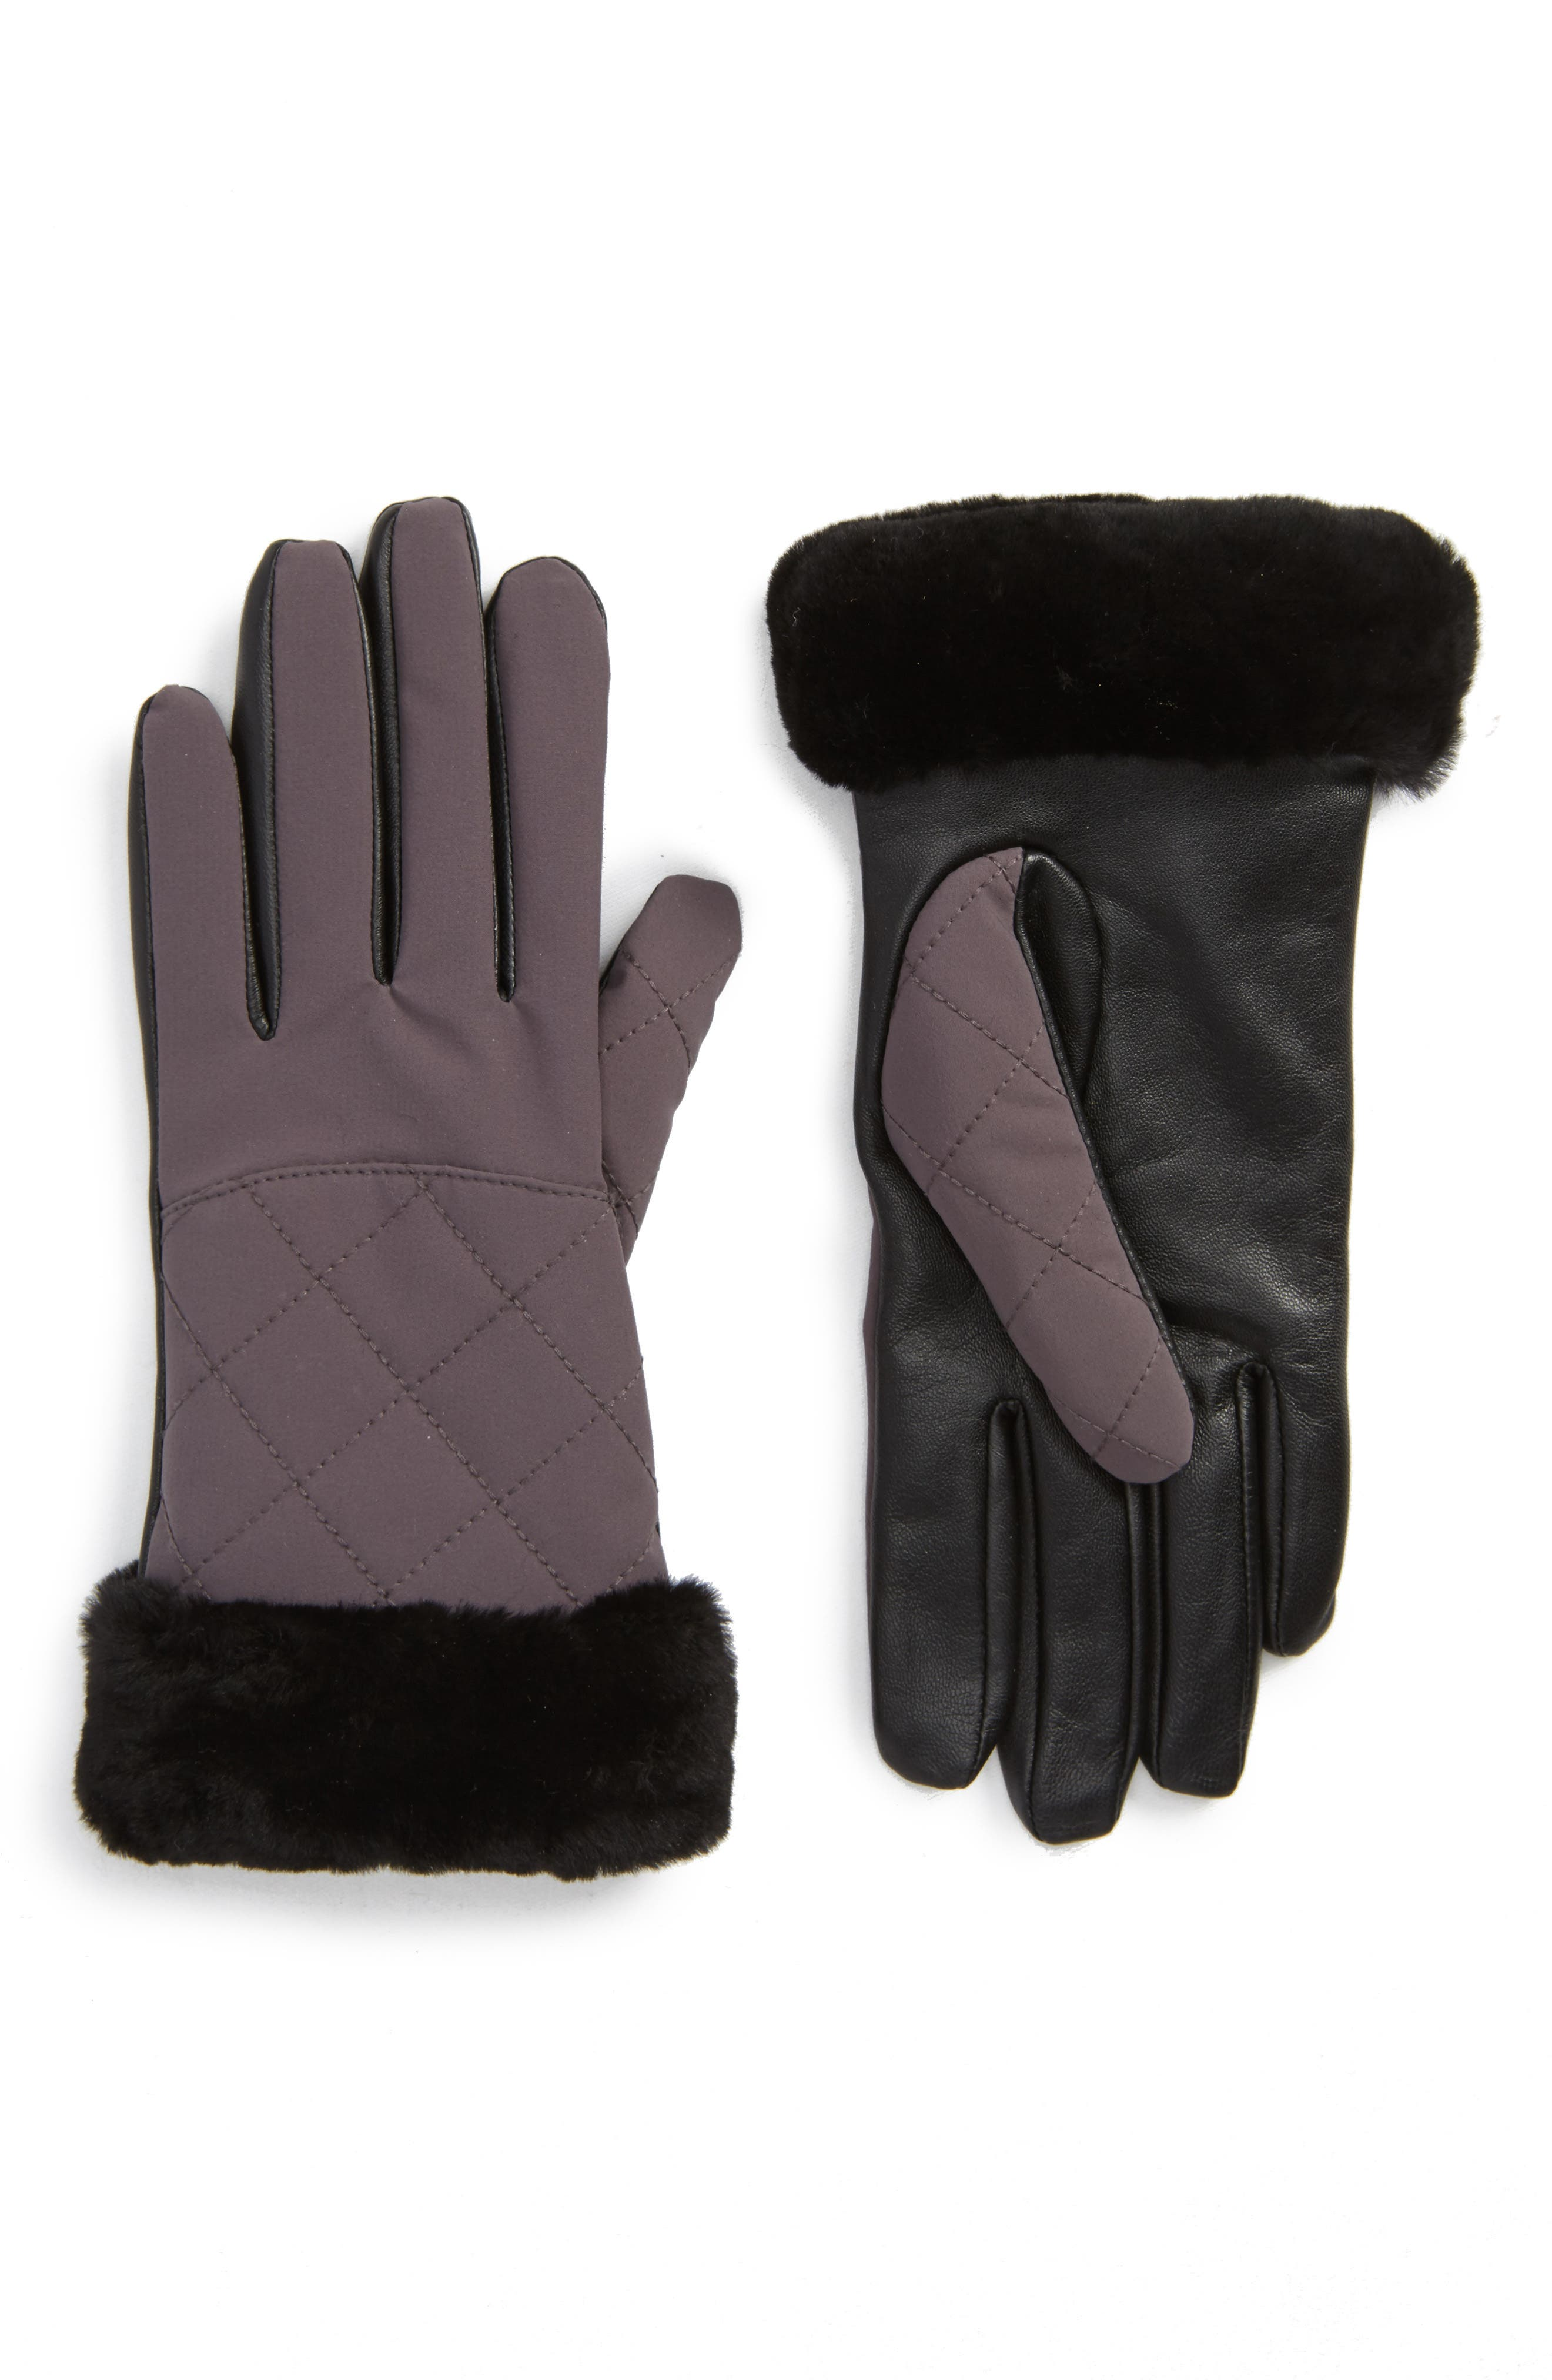 UGG<sup>®</sup> Water Resistant Touchscreen Quilted Nylon, Leather & Genuine Shearling Gloves,                         Main,                         color, Grey